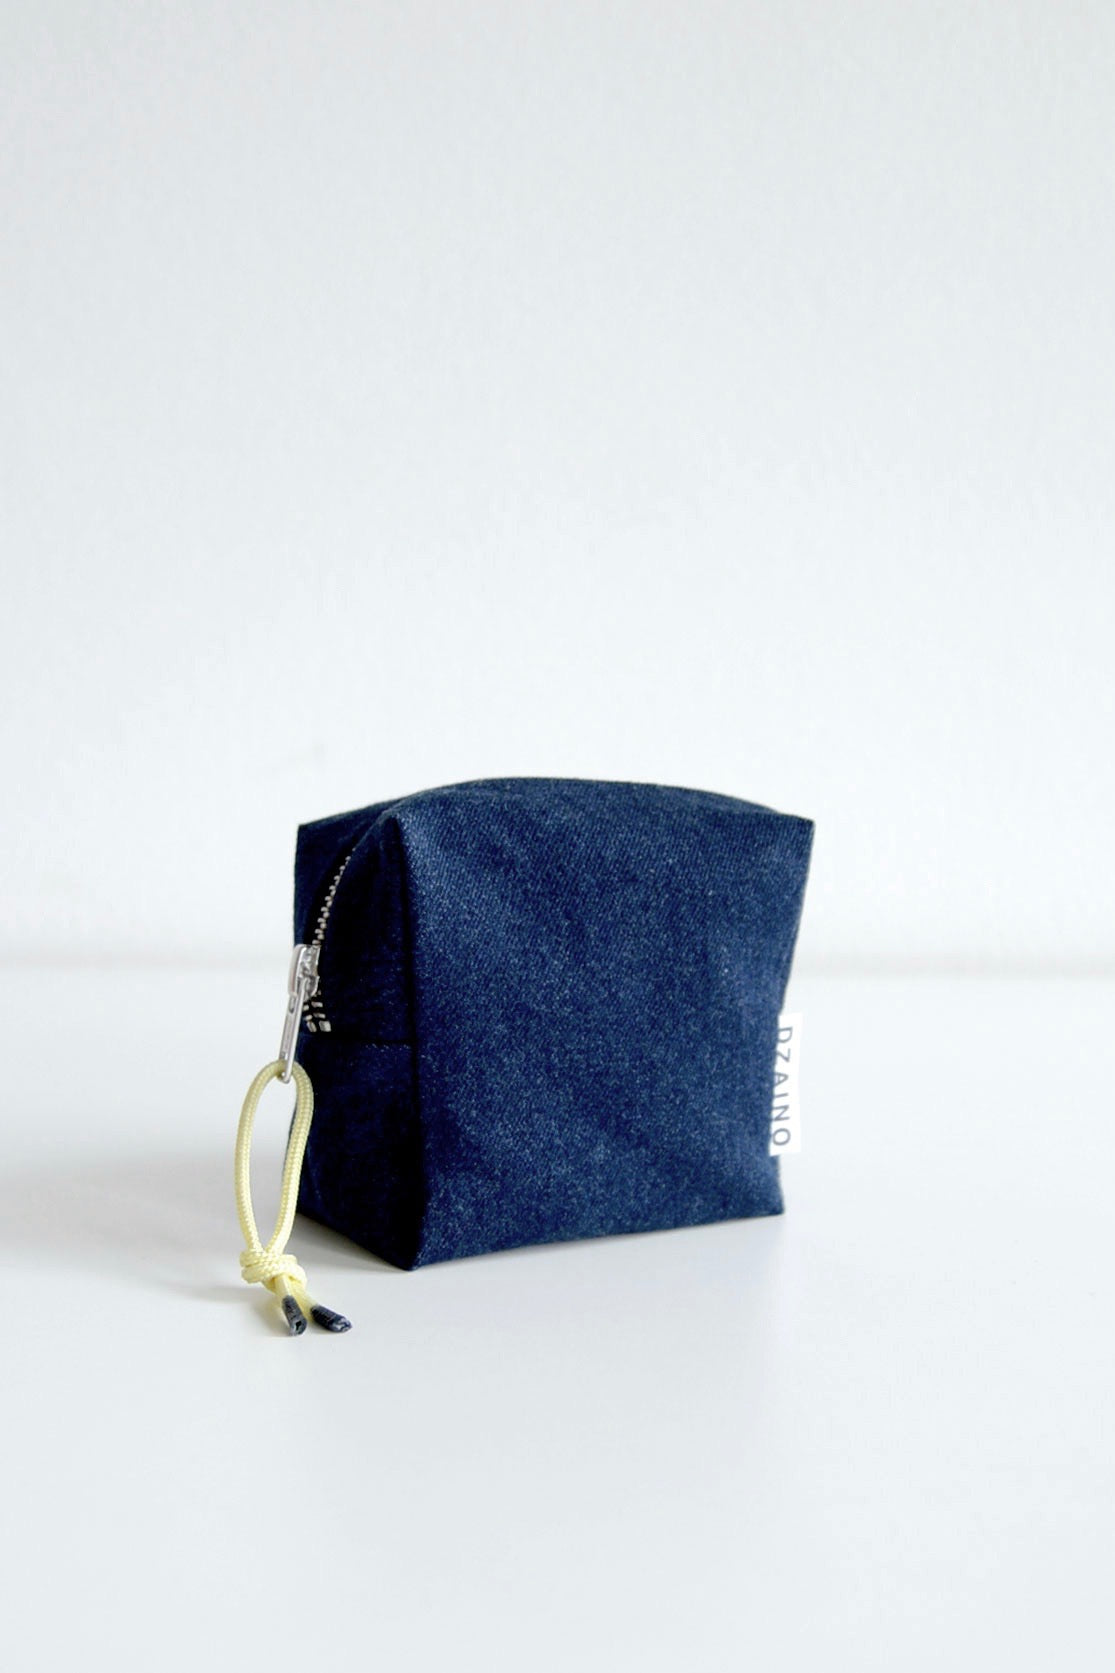 Essential Oil Bag Starter Dark Blue